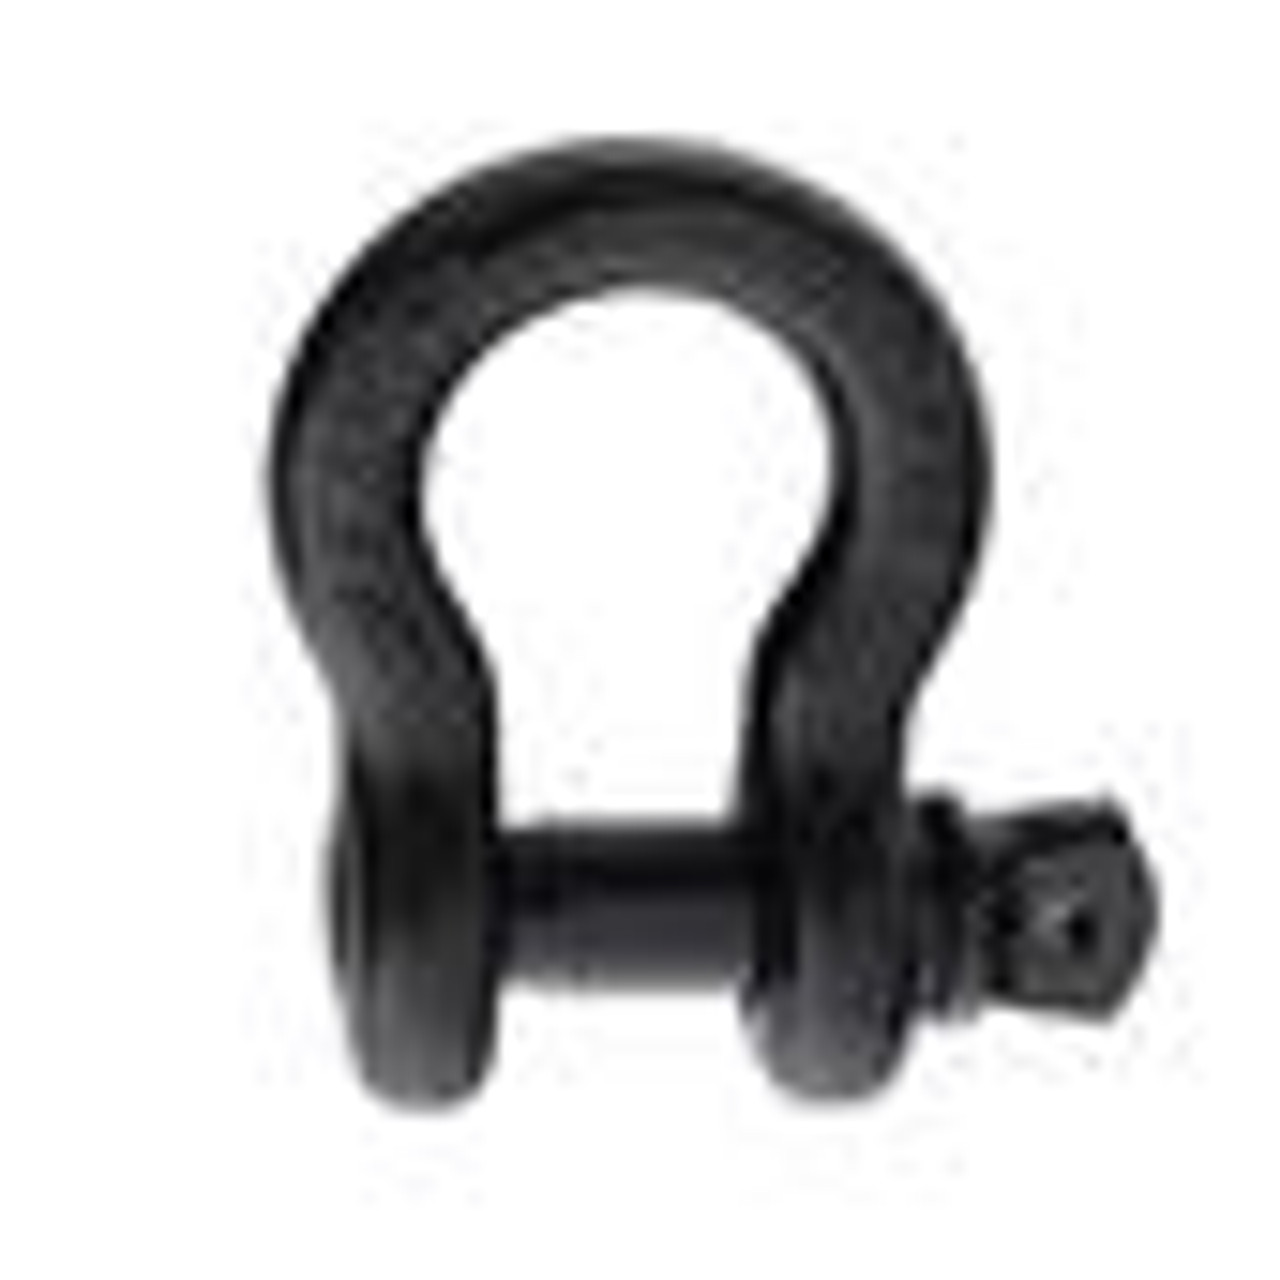 "Smittybilt 3/4"" D-Ring Shackle"